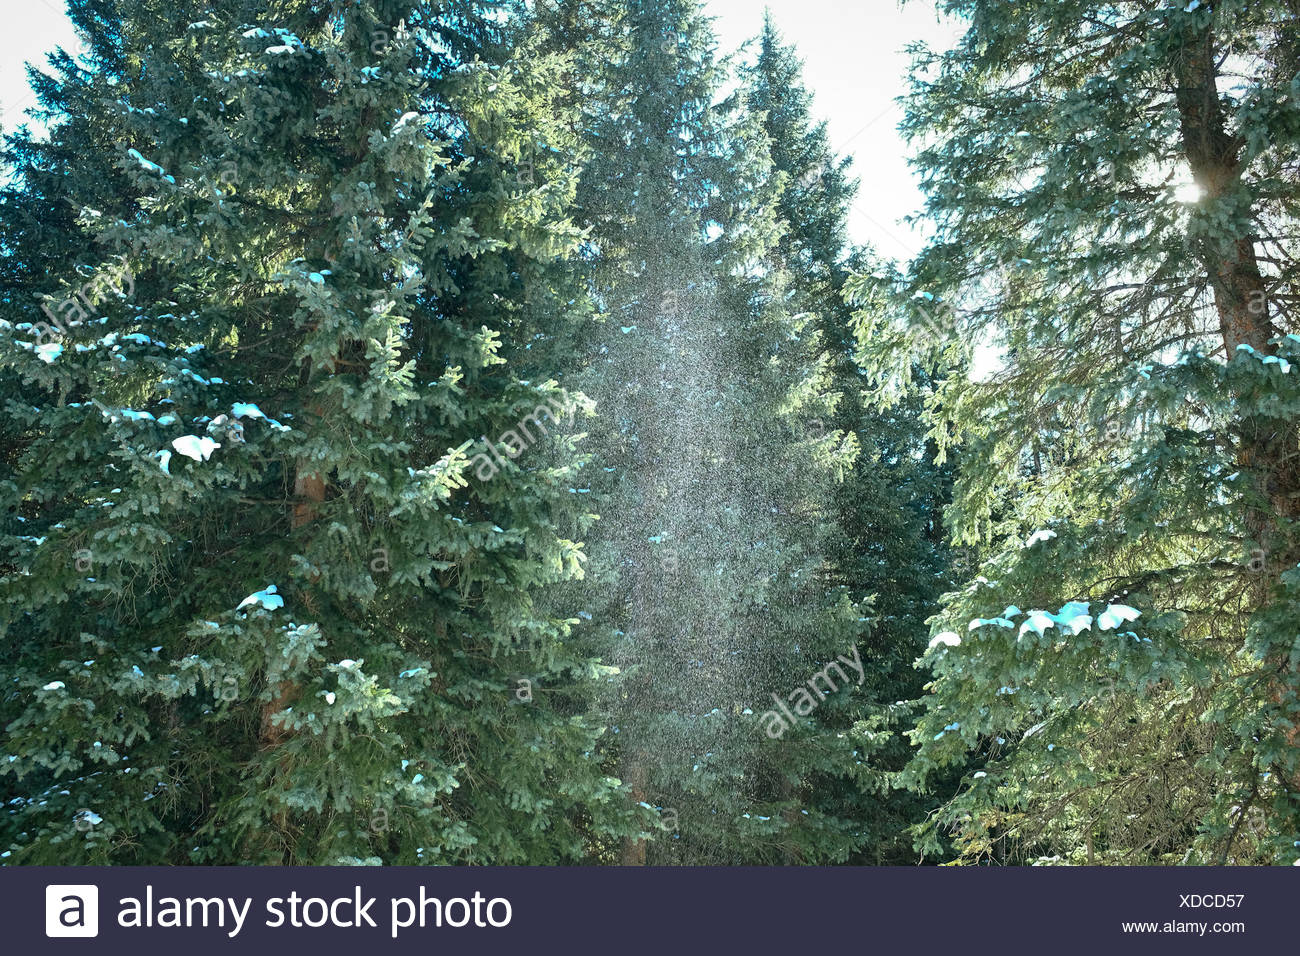 Sprinkle of snow in green forest - Stock Image